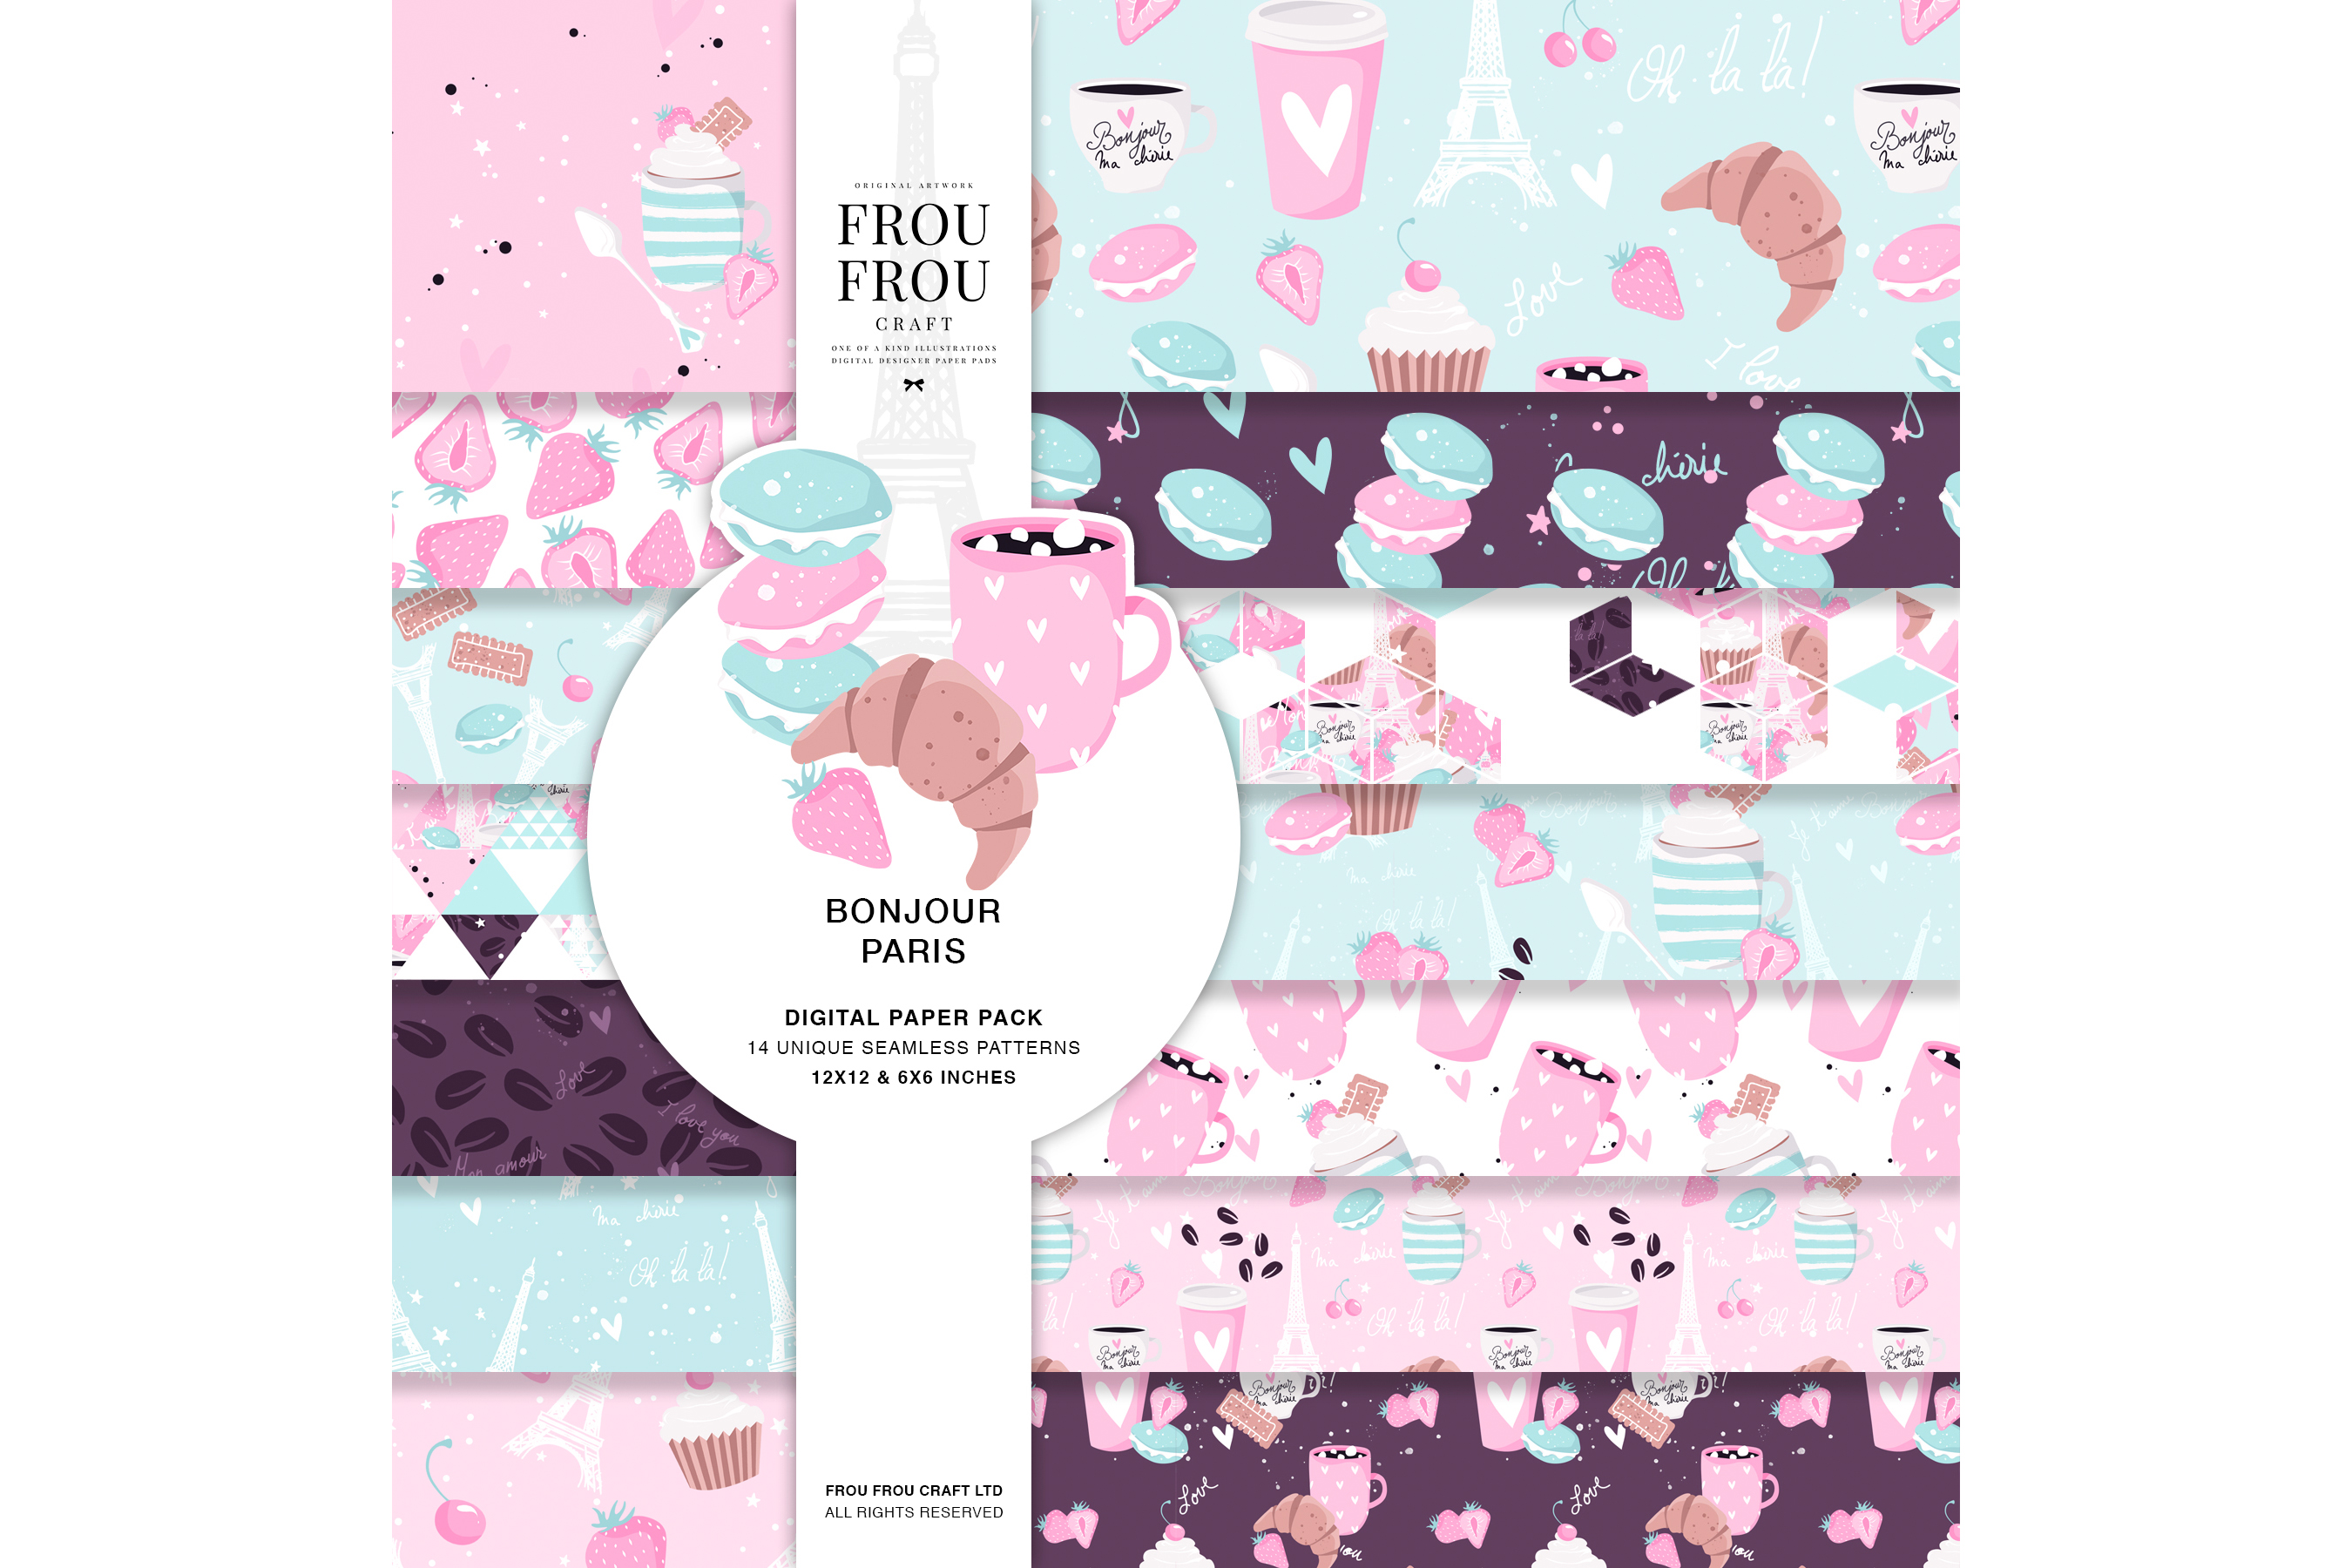 Paris Bakery Sweets Macaroons Cake Paper Pack example image 1